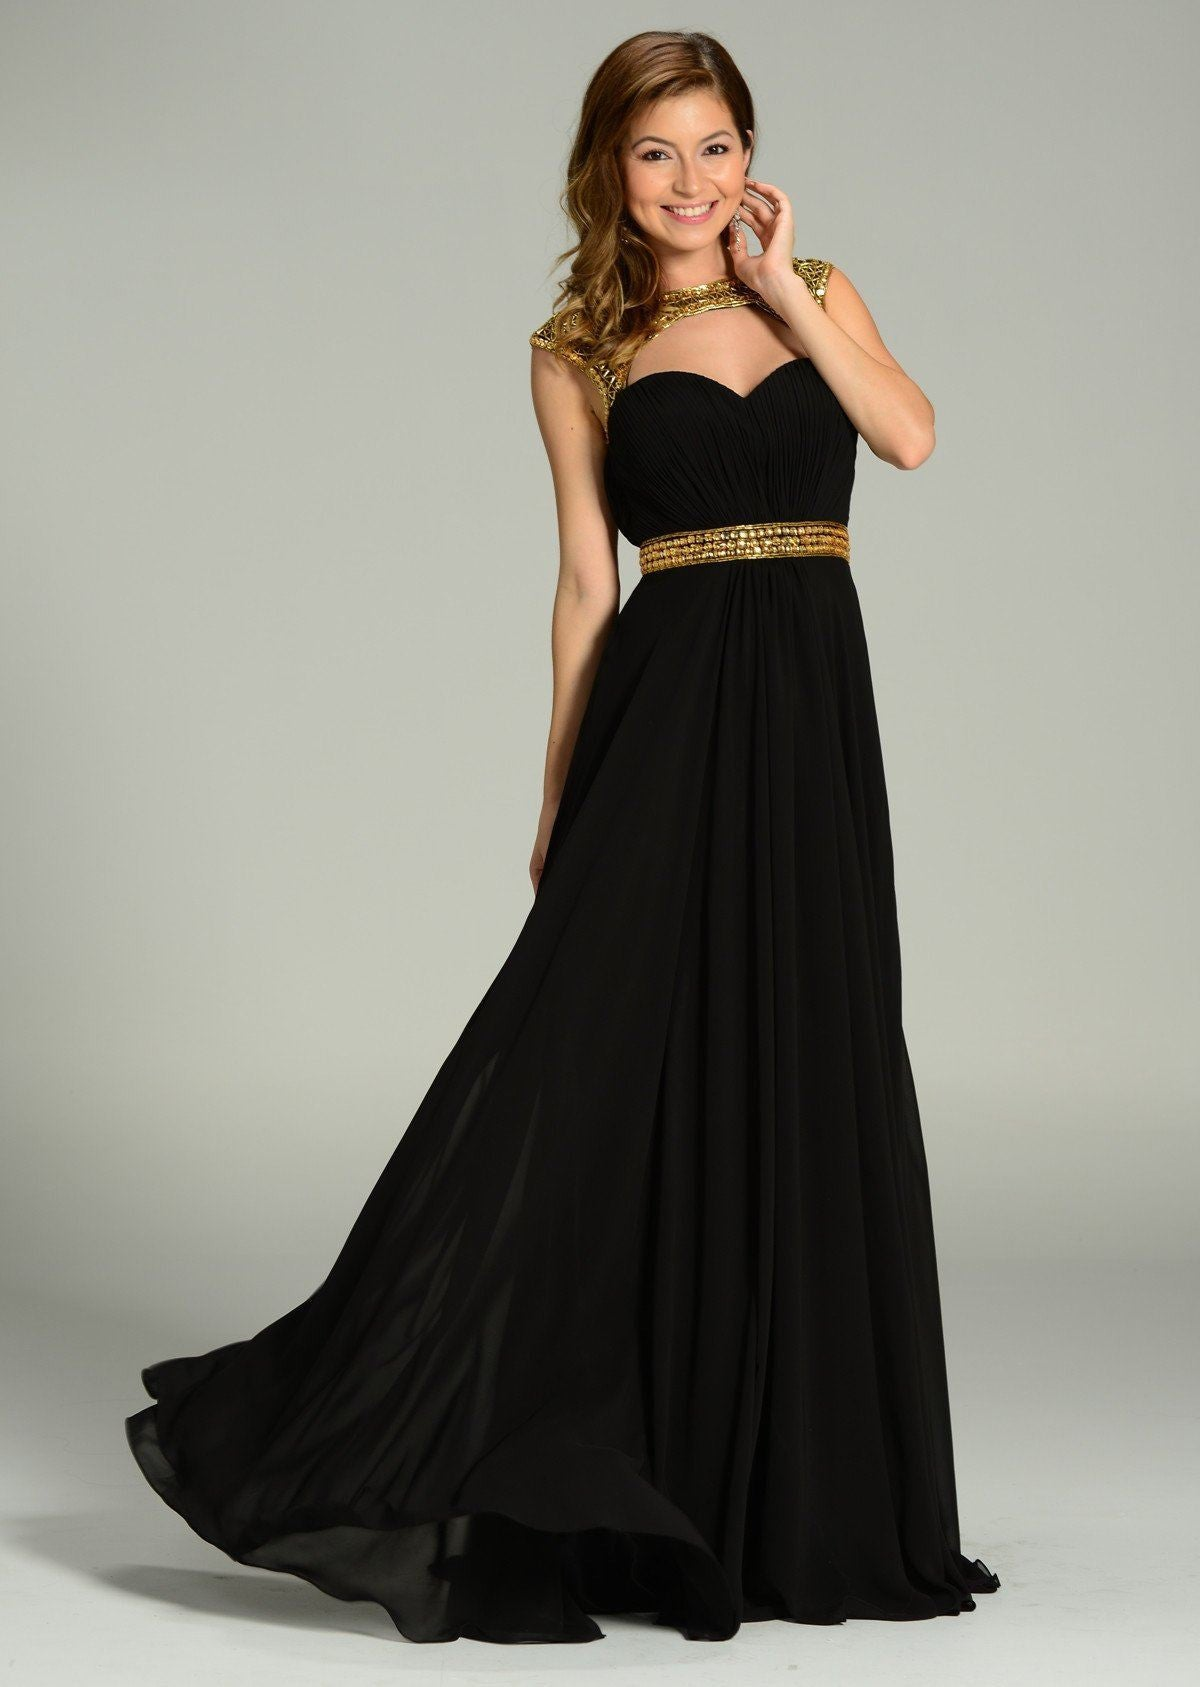 Elegant evening dress 101- 7182 – Simply Fab Dress